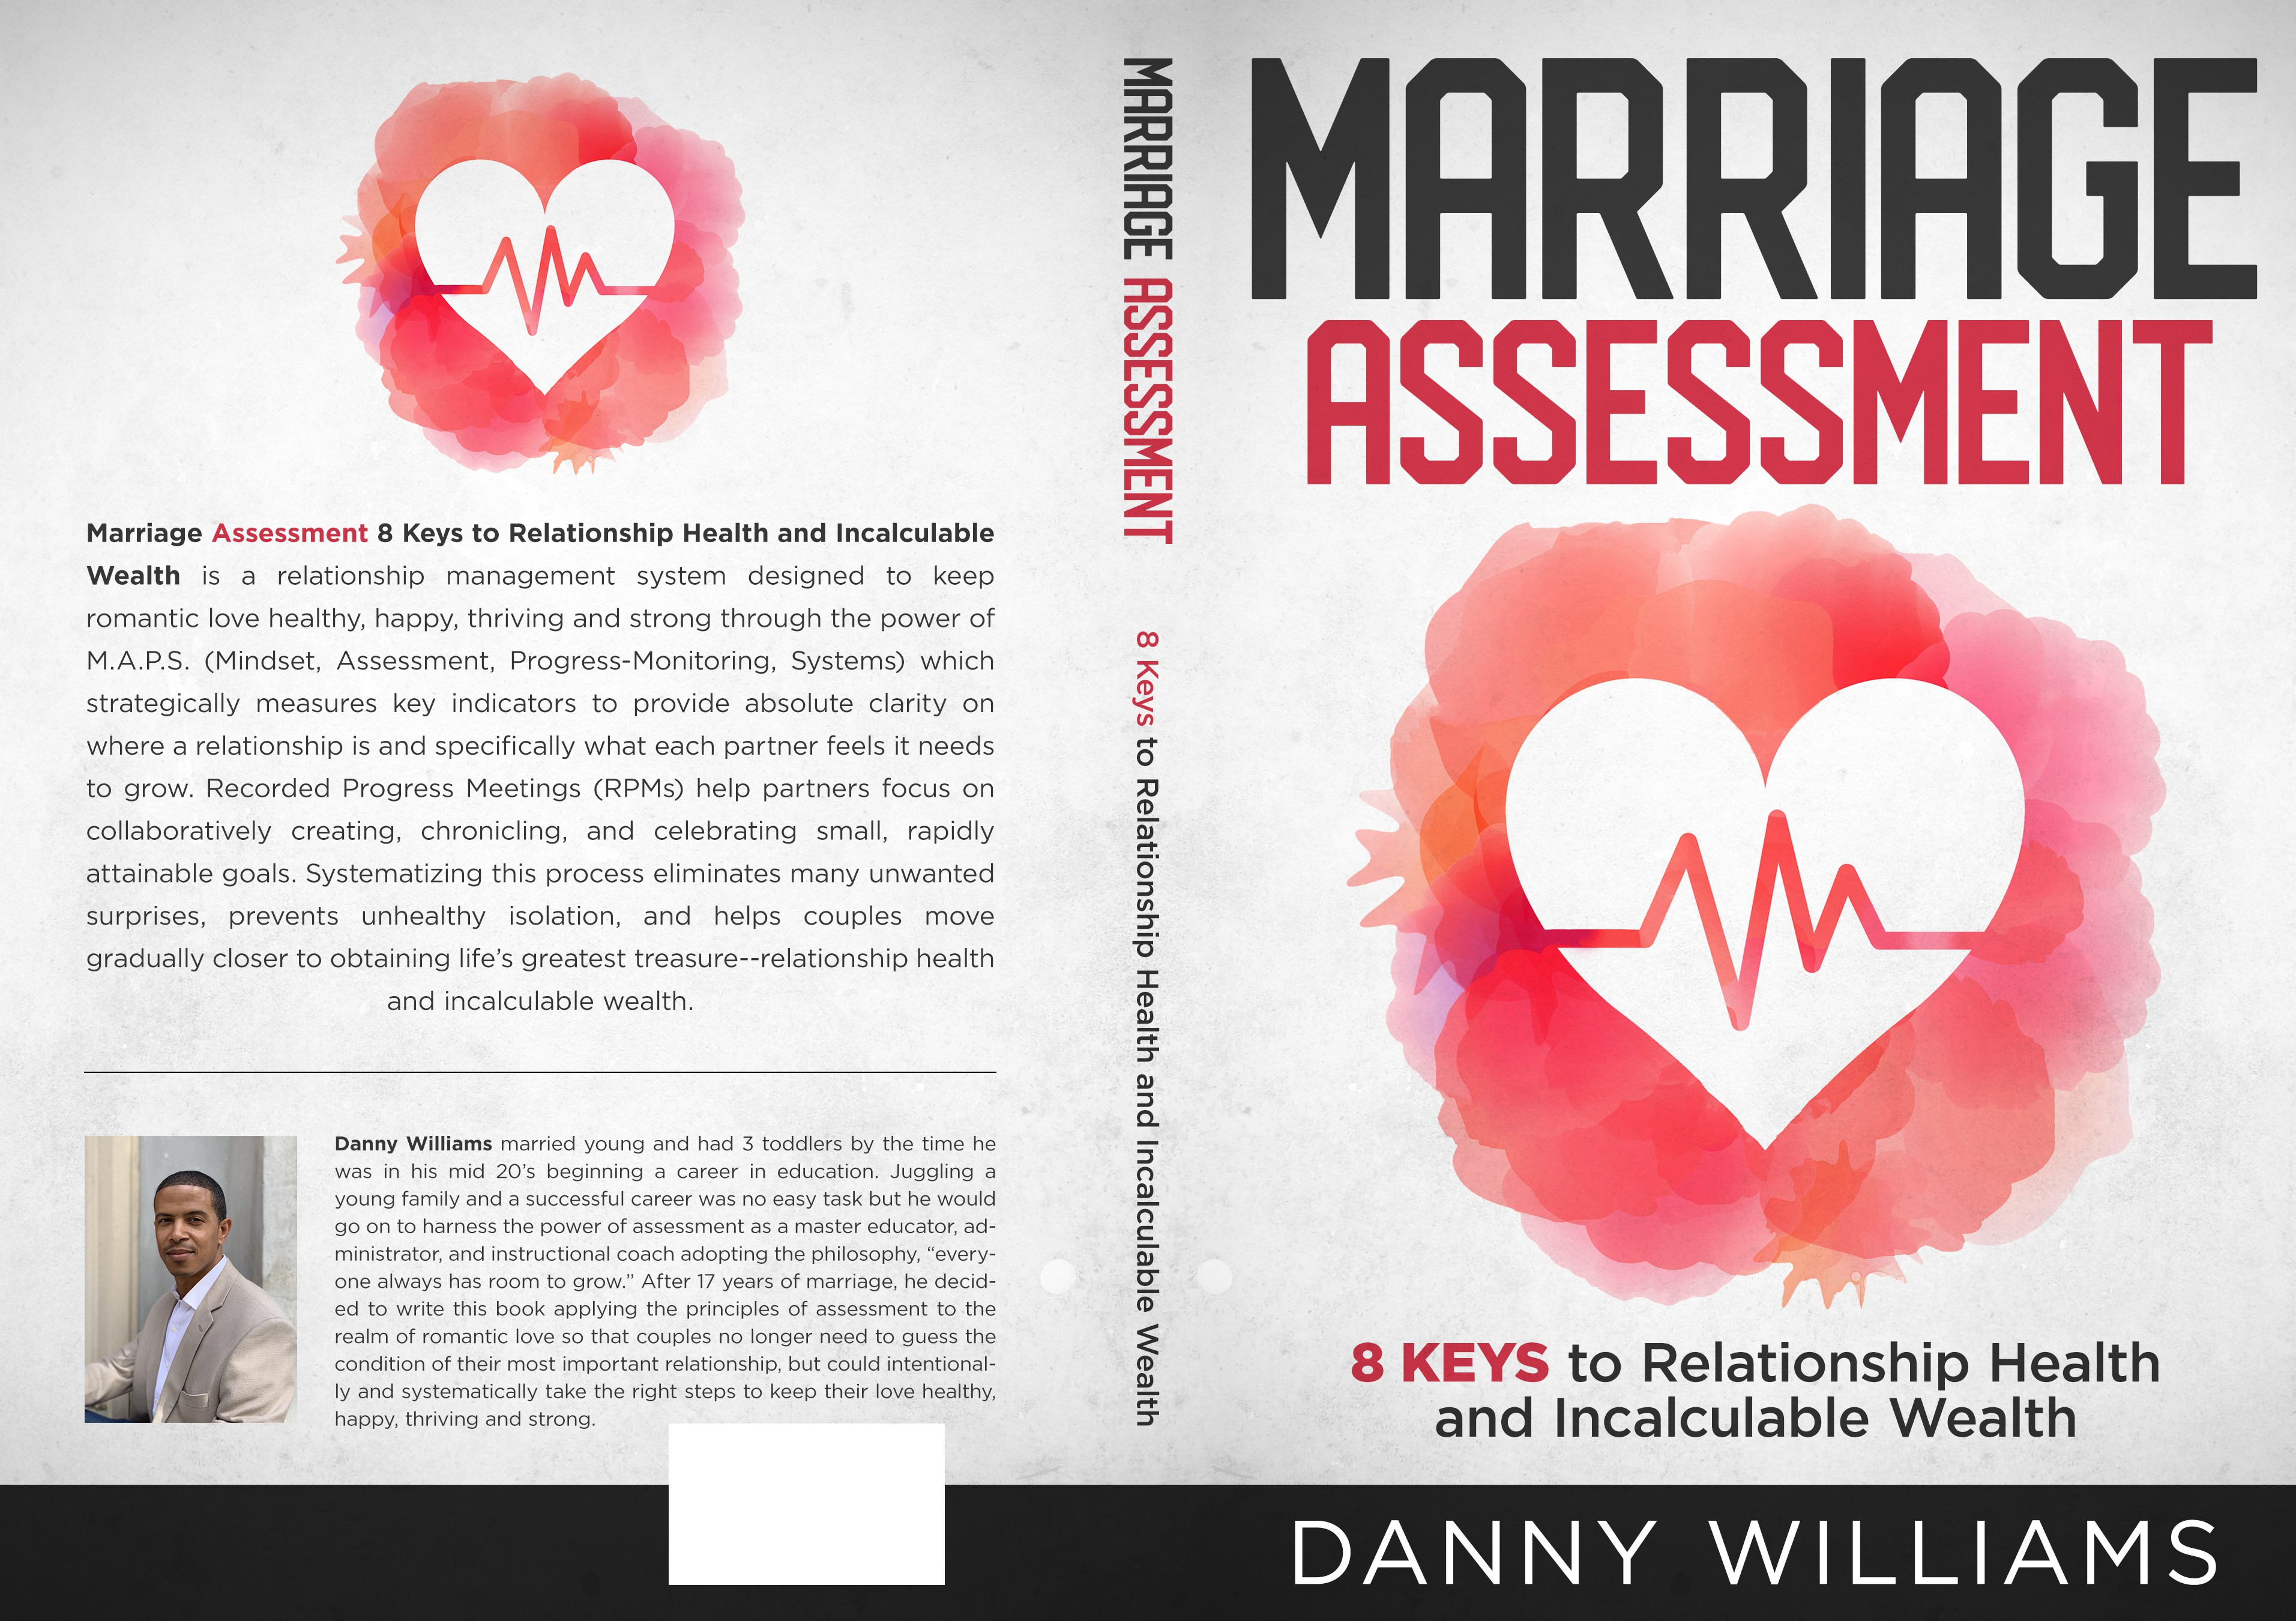 Need a Book Cover that is Engaging, Practical, and Attractive to Couples aged 25-45